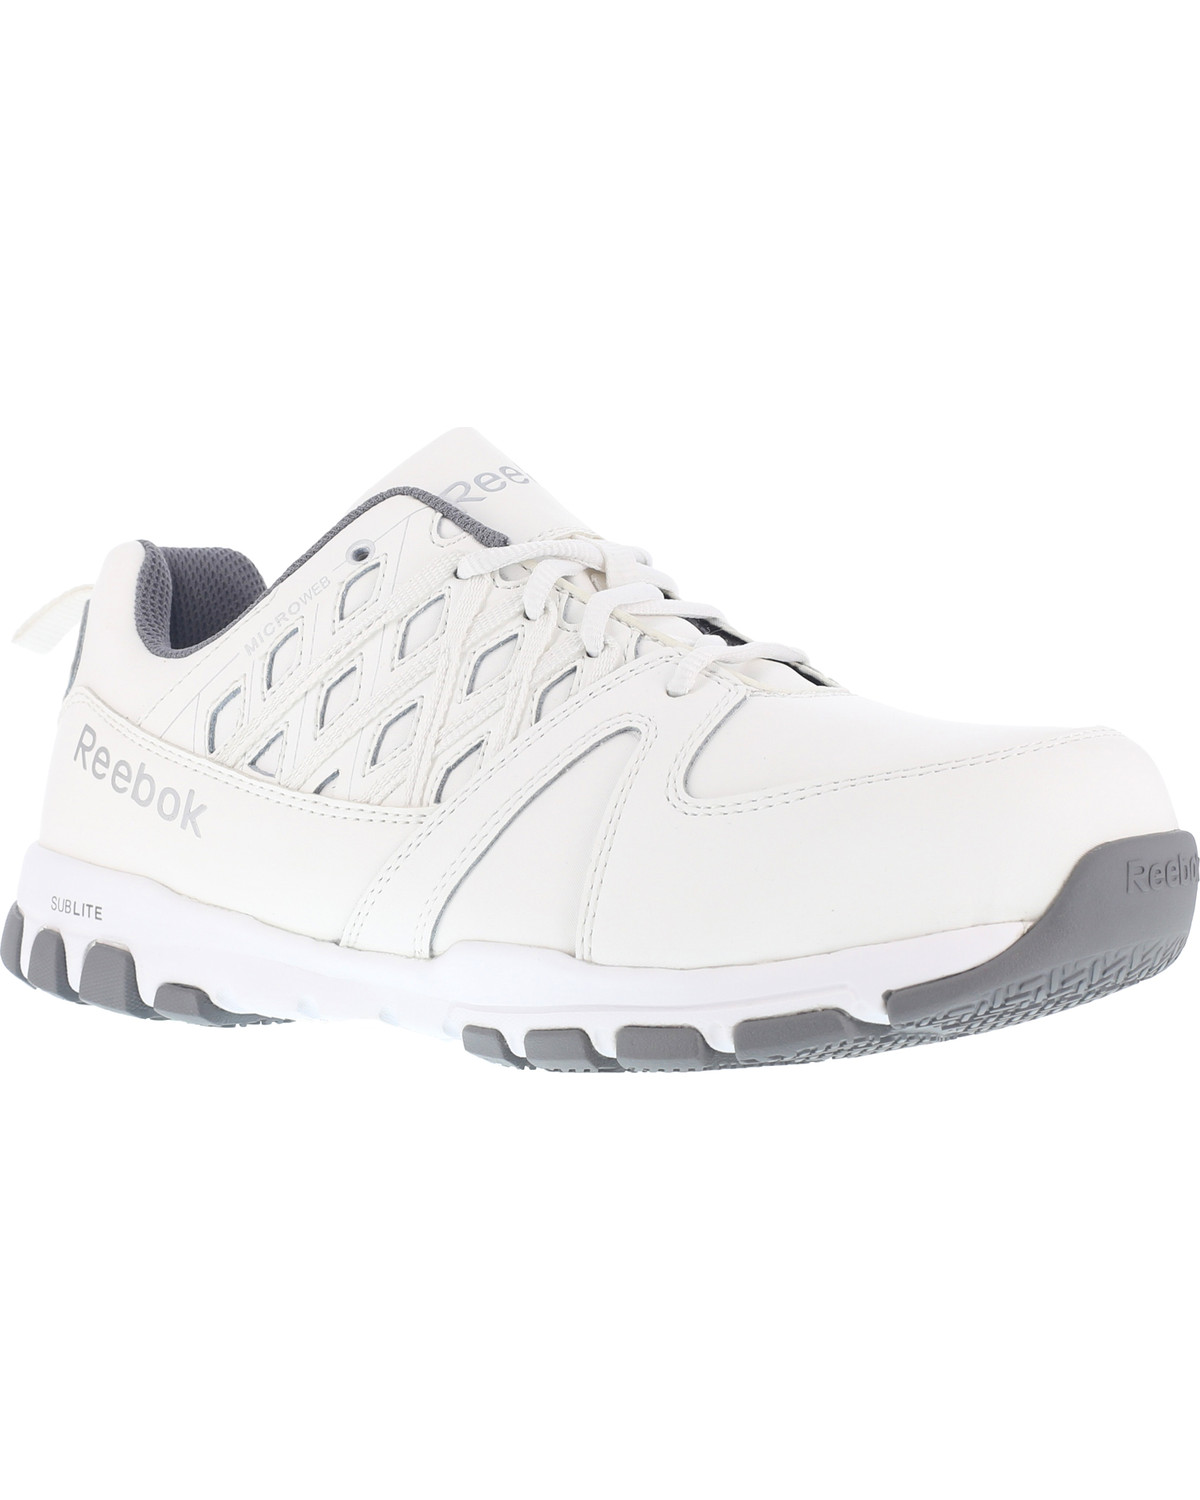 Reebok Women s Athletic Oxford Shoes - Steel Toe  141c96f65